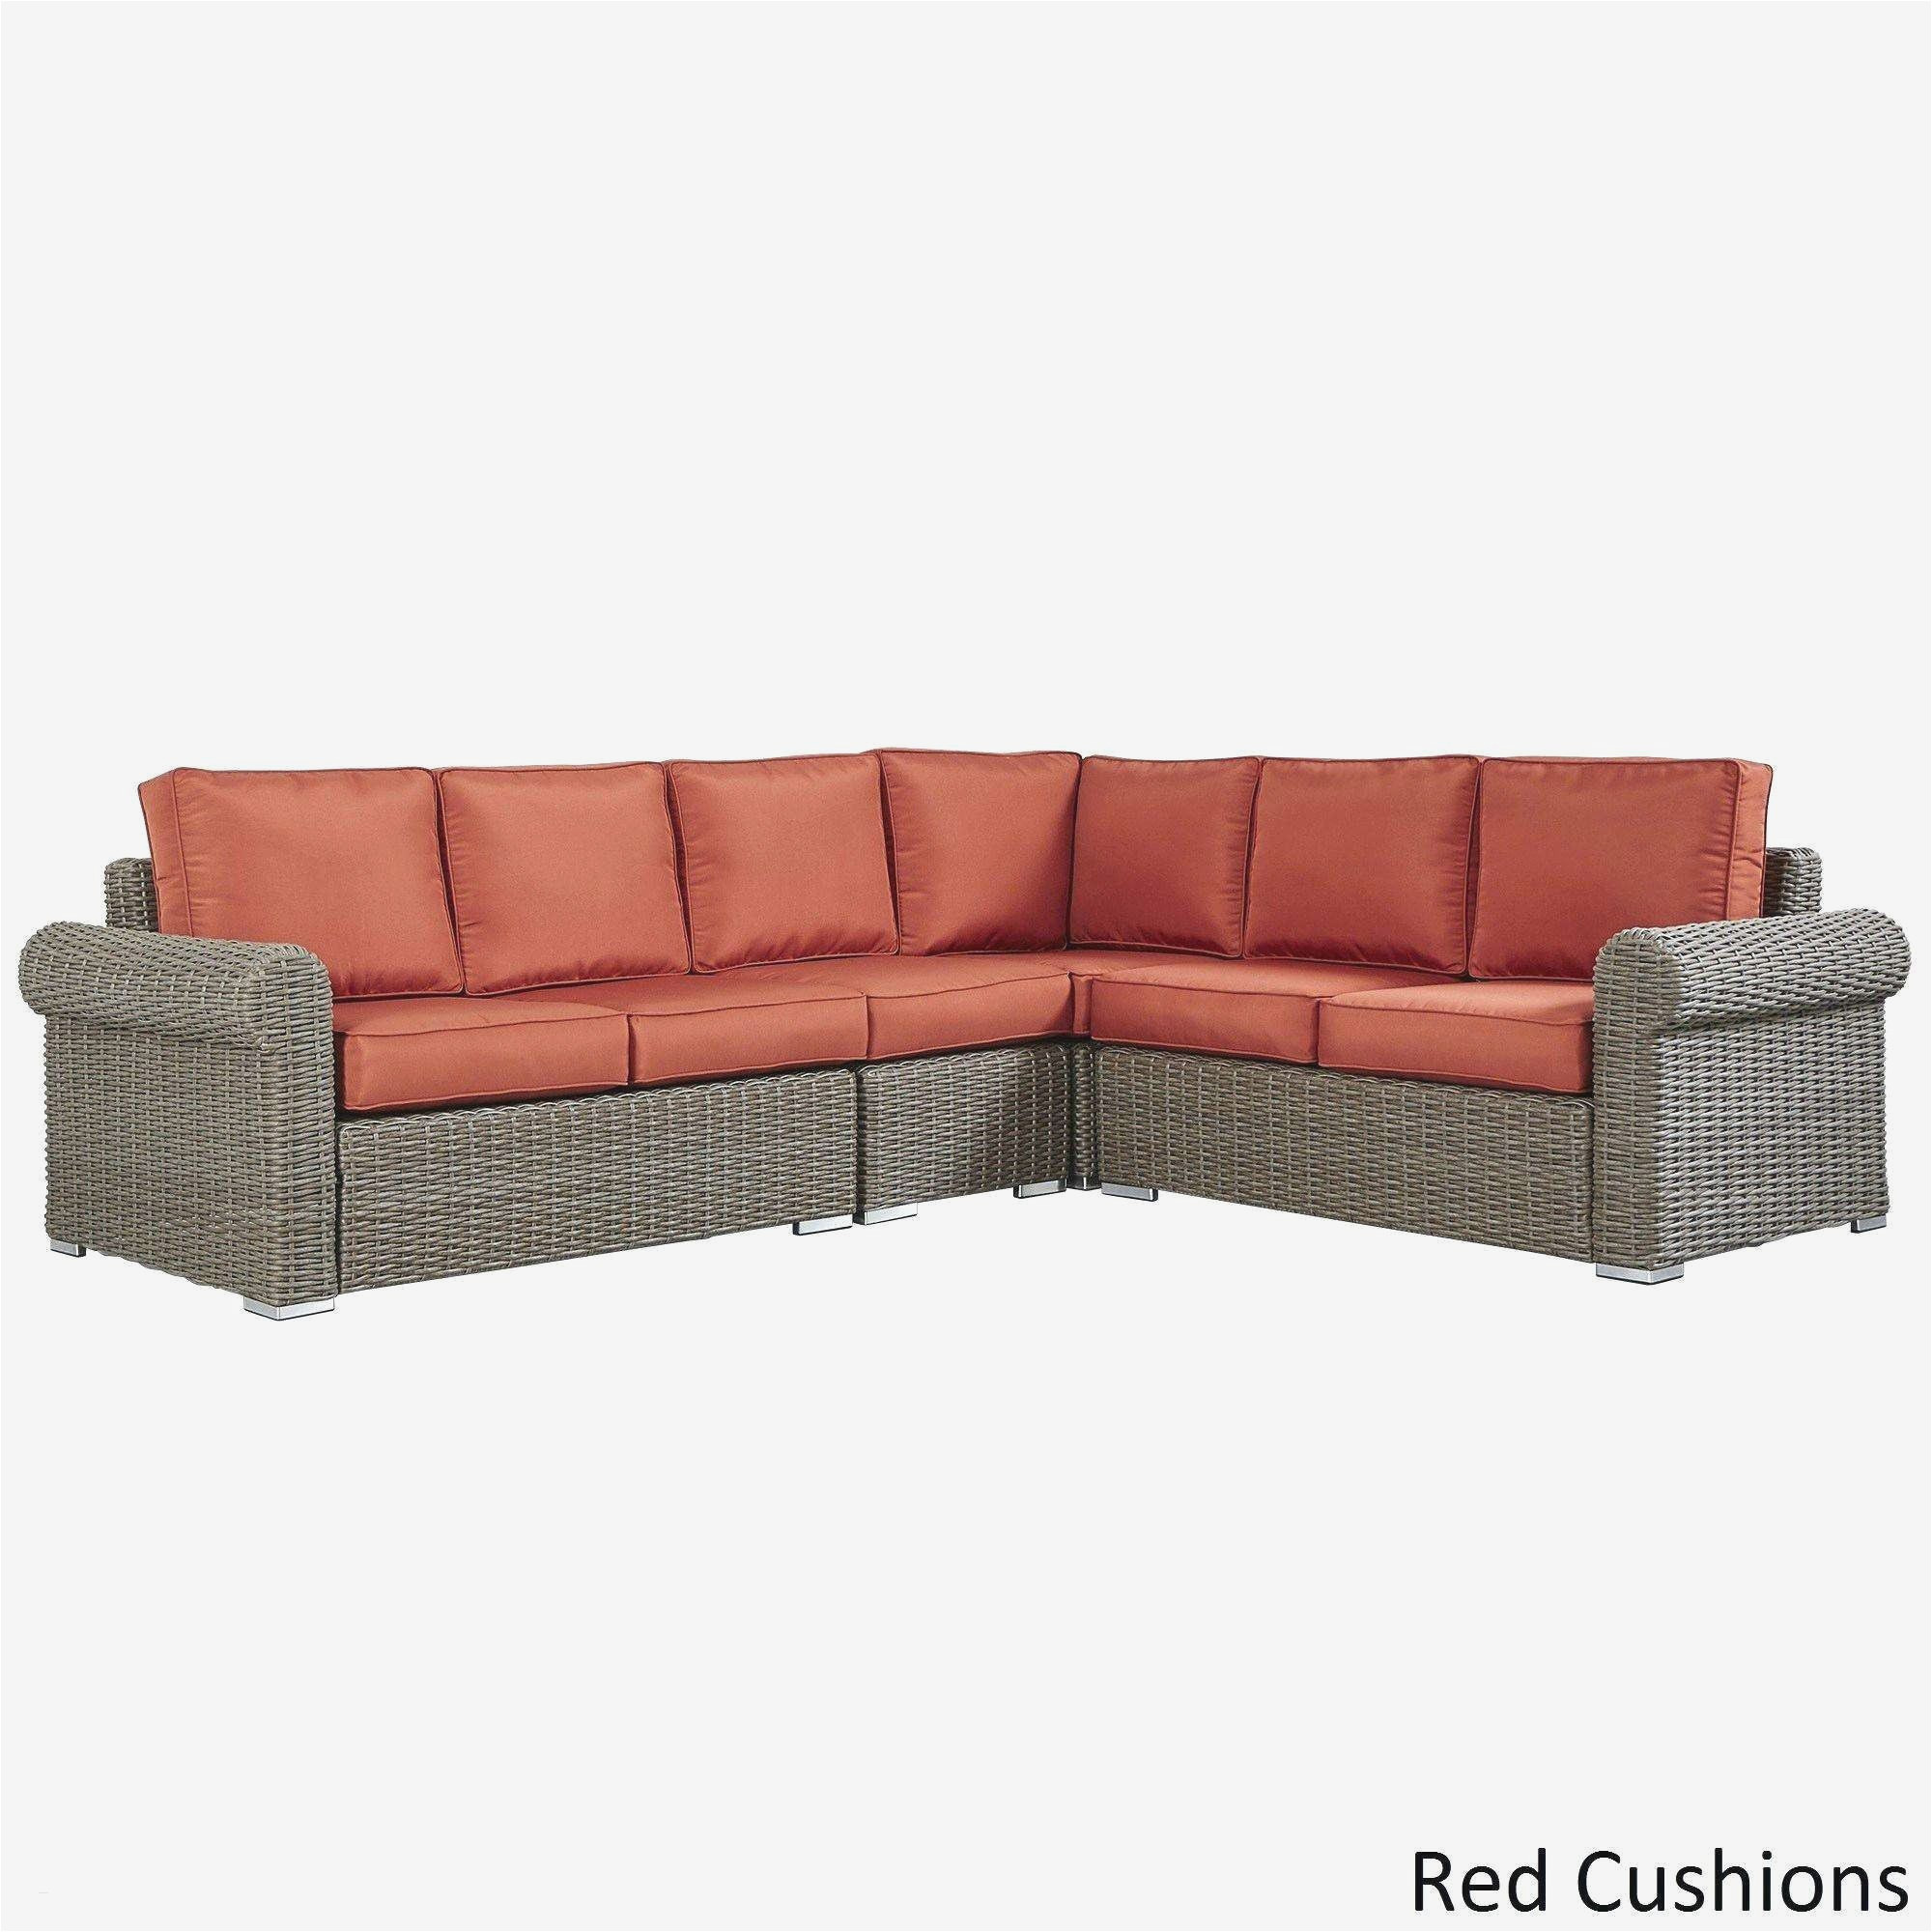 furniture fresh discount furniture york pa excellent home design wonderful and home ideas simple discount